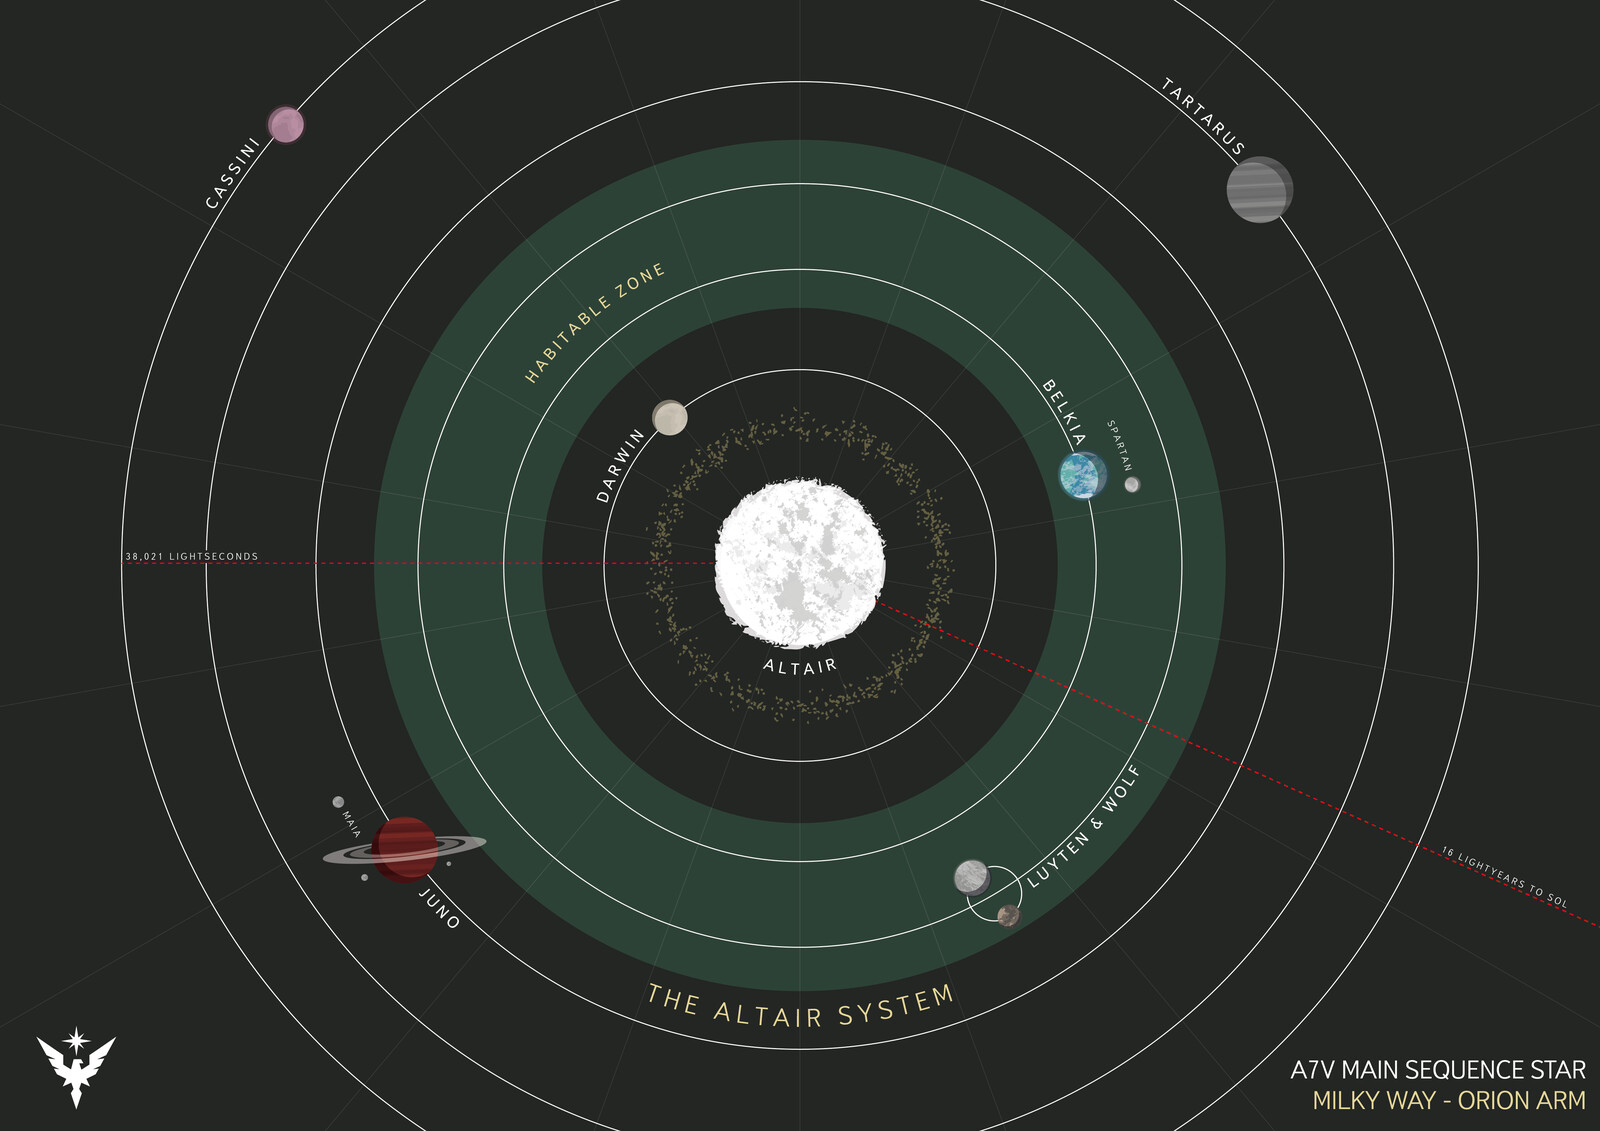 Altair - The Altair System